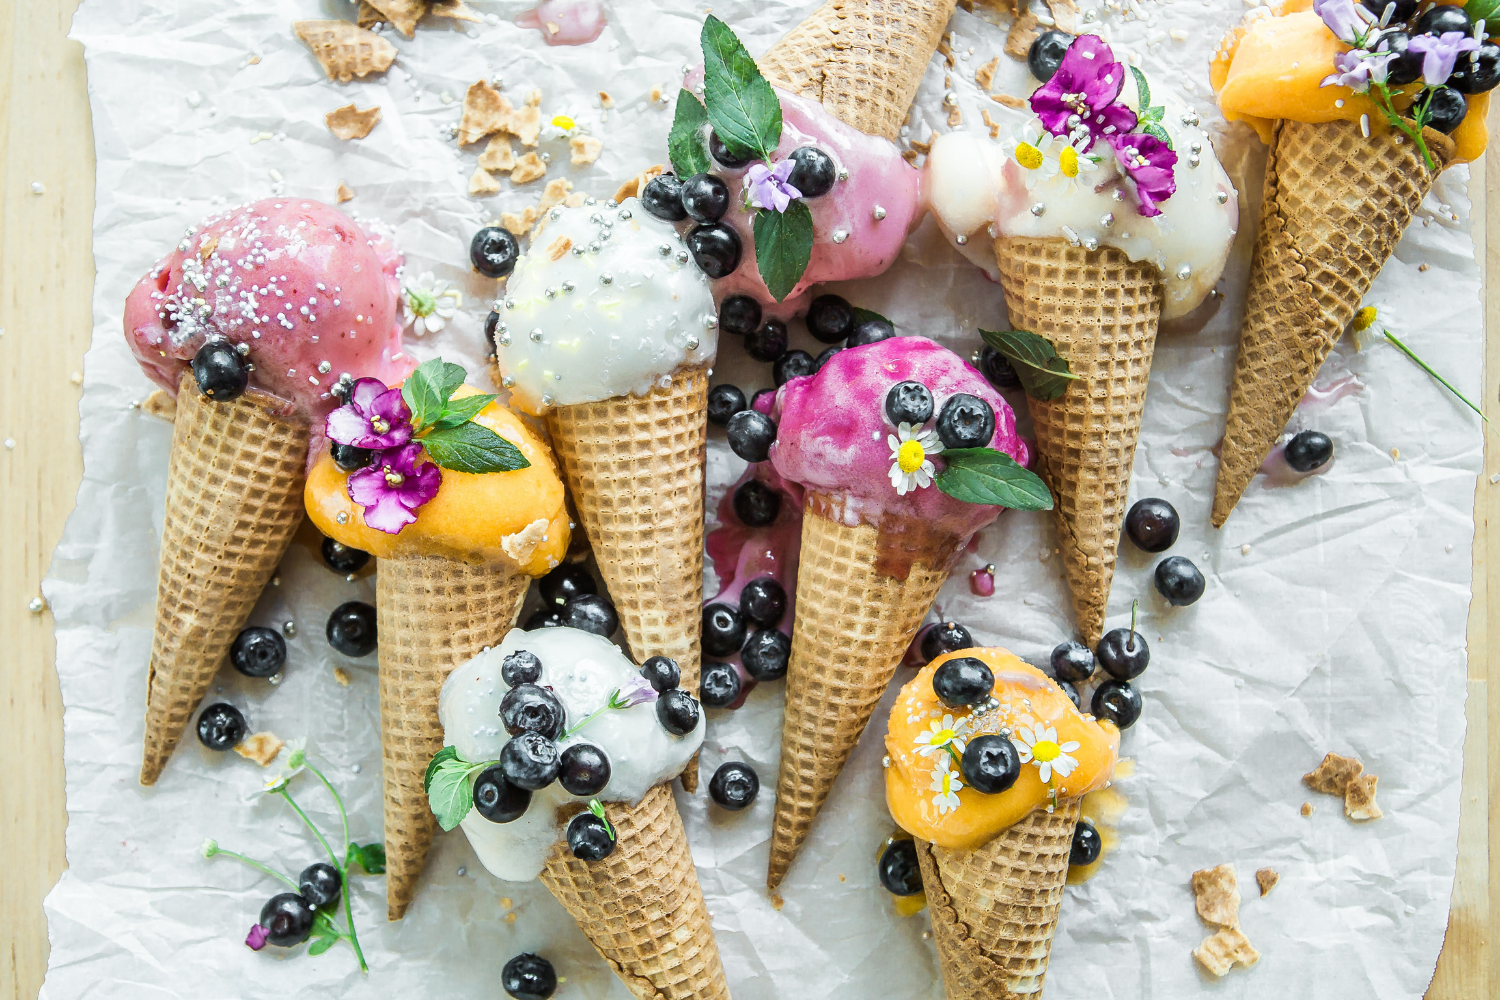 Pink, orange, and white ice cream cones laid out on a table with flowers and blueberries; what you need to know about IBS and lactose intolerance